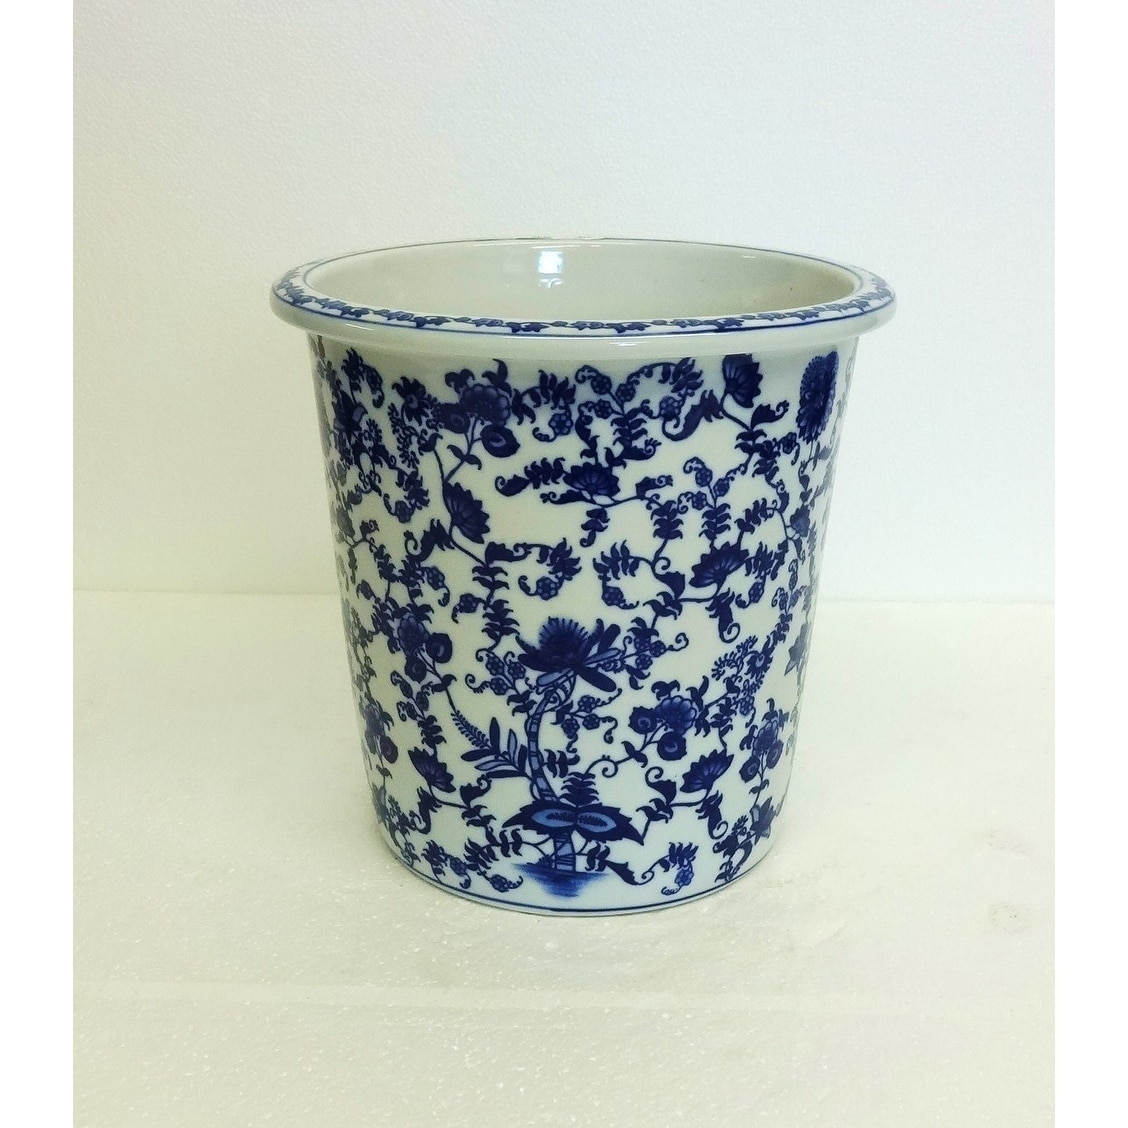 Shabby Chic Waste Baskets Floral Blue And White Porcelain Waste Basket Cache Pot